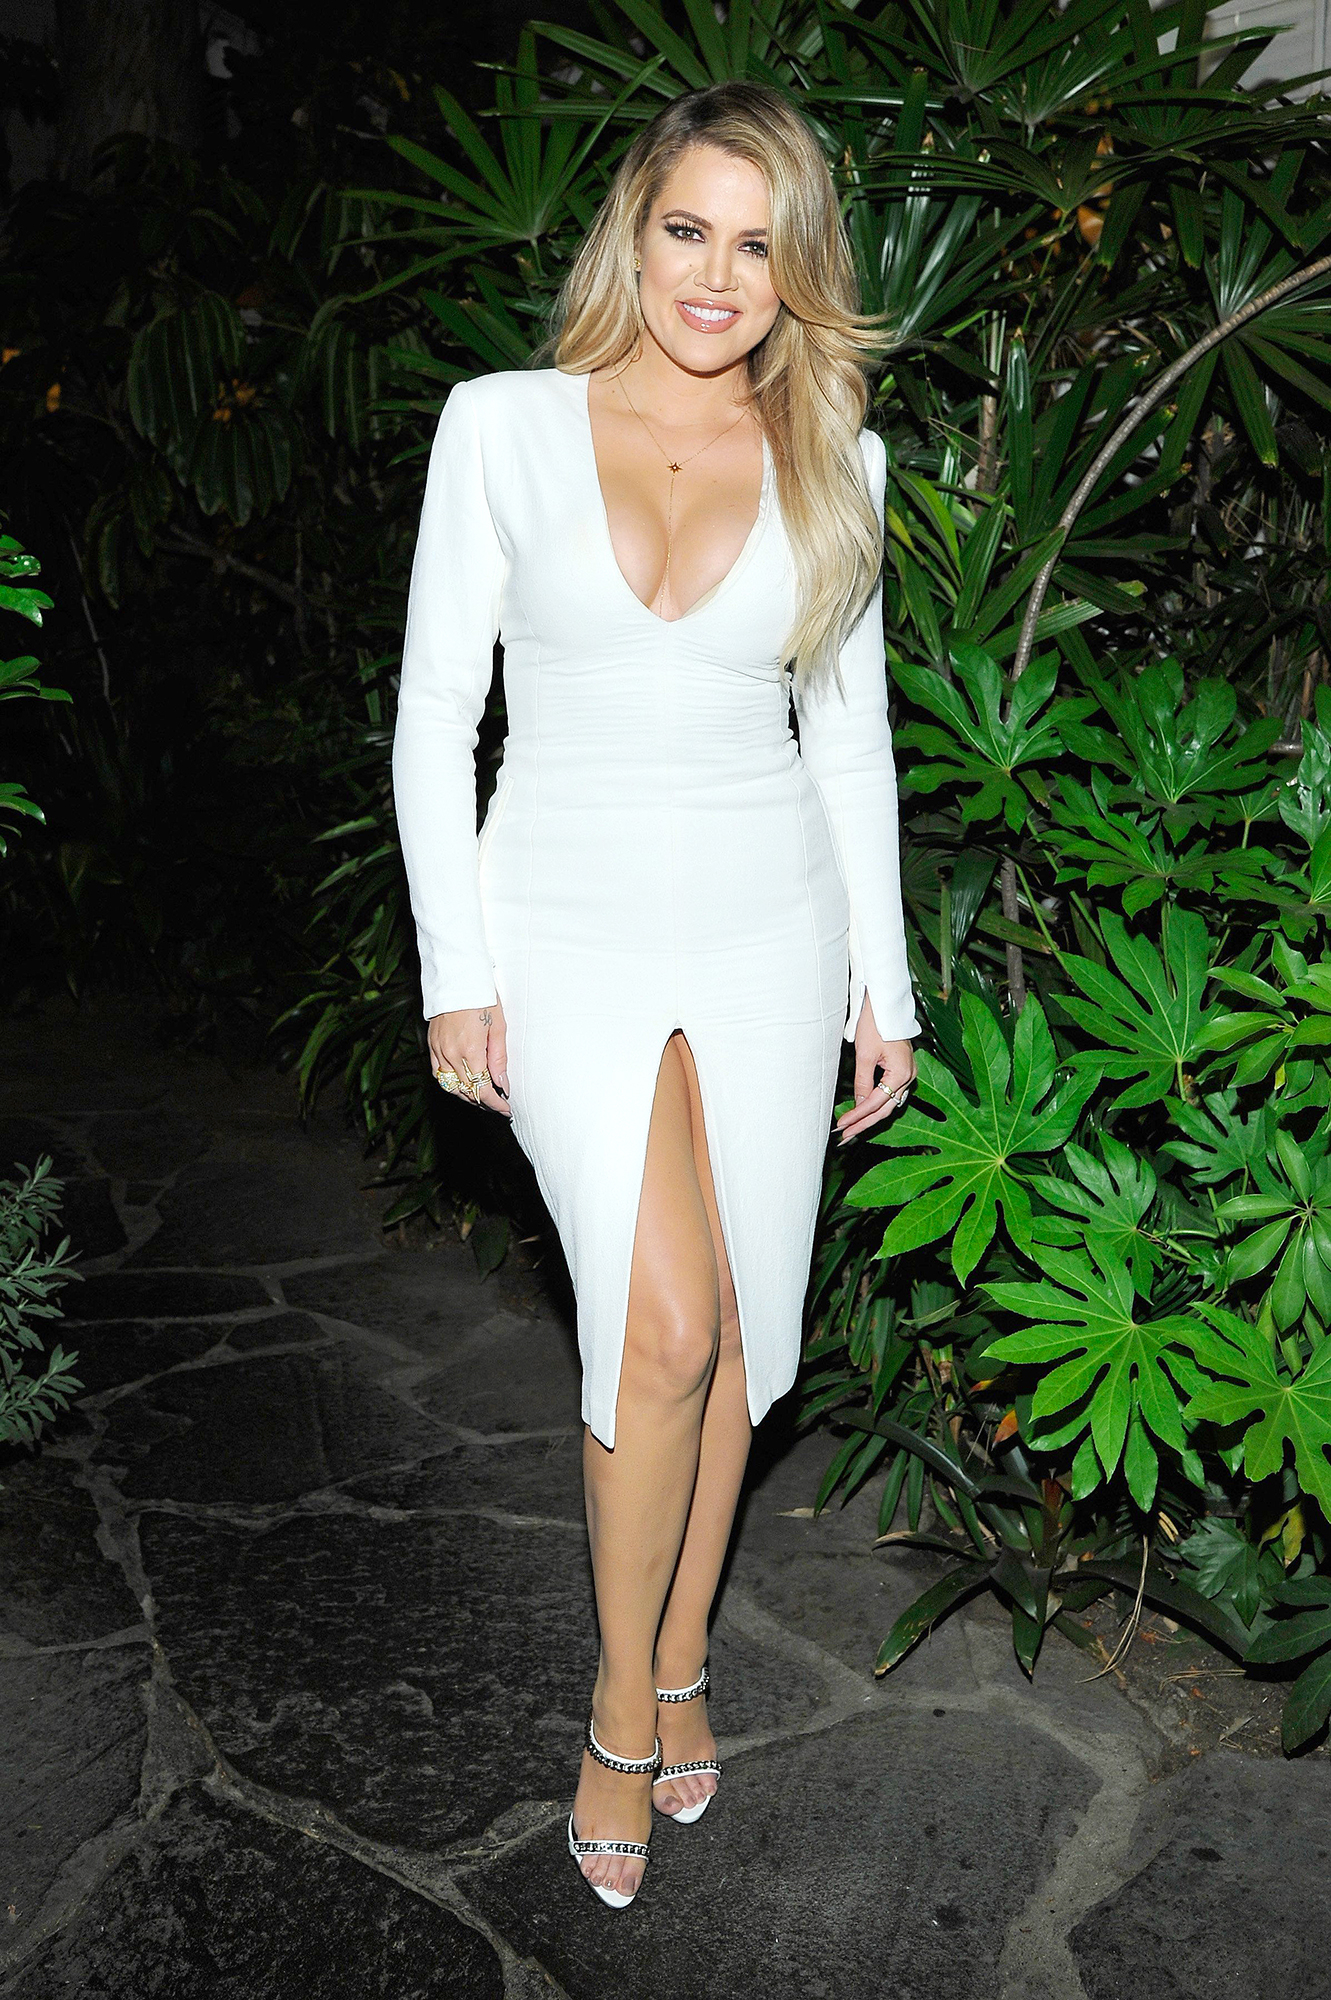 Khloe Kardashian - Khloé showed off her fit physique in a tight white ensemble at the Opening Ceremony and Calvin Klein Jeans' celebration launch of the #mycalvins collection in L.A. on April 23, 2015.